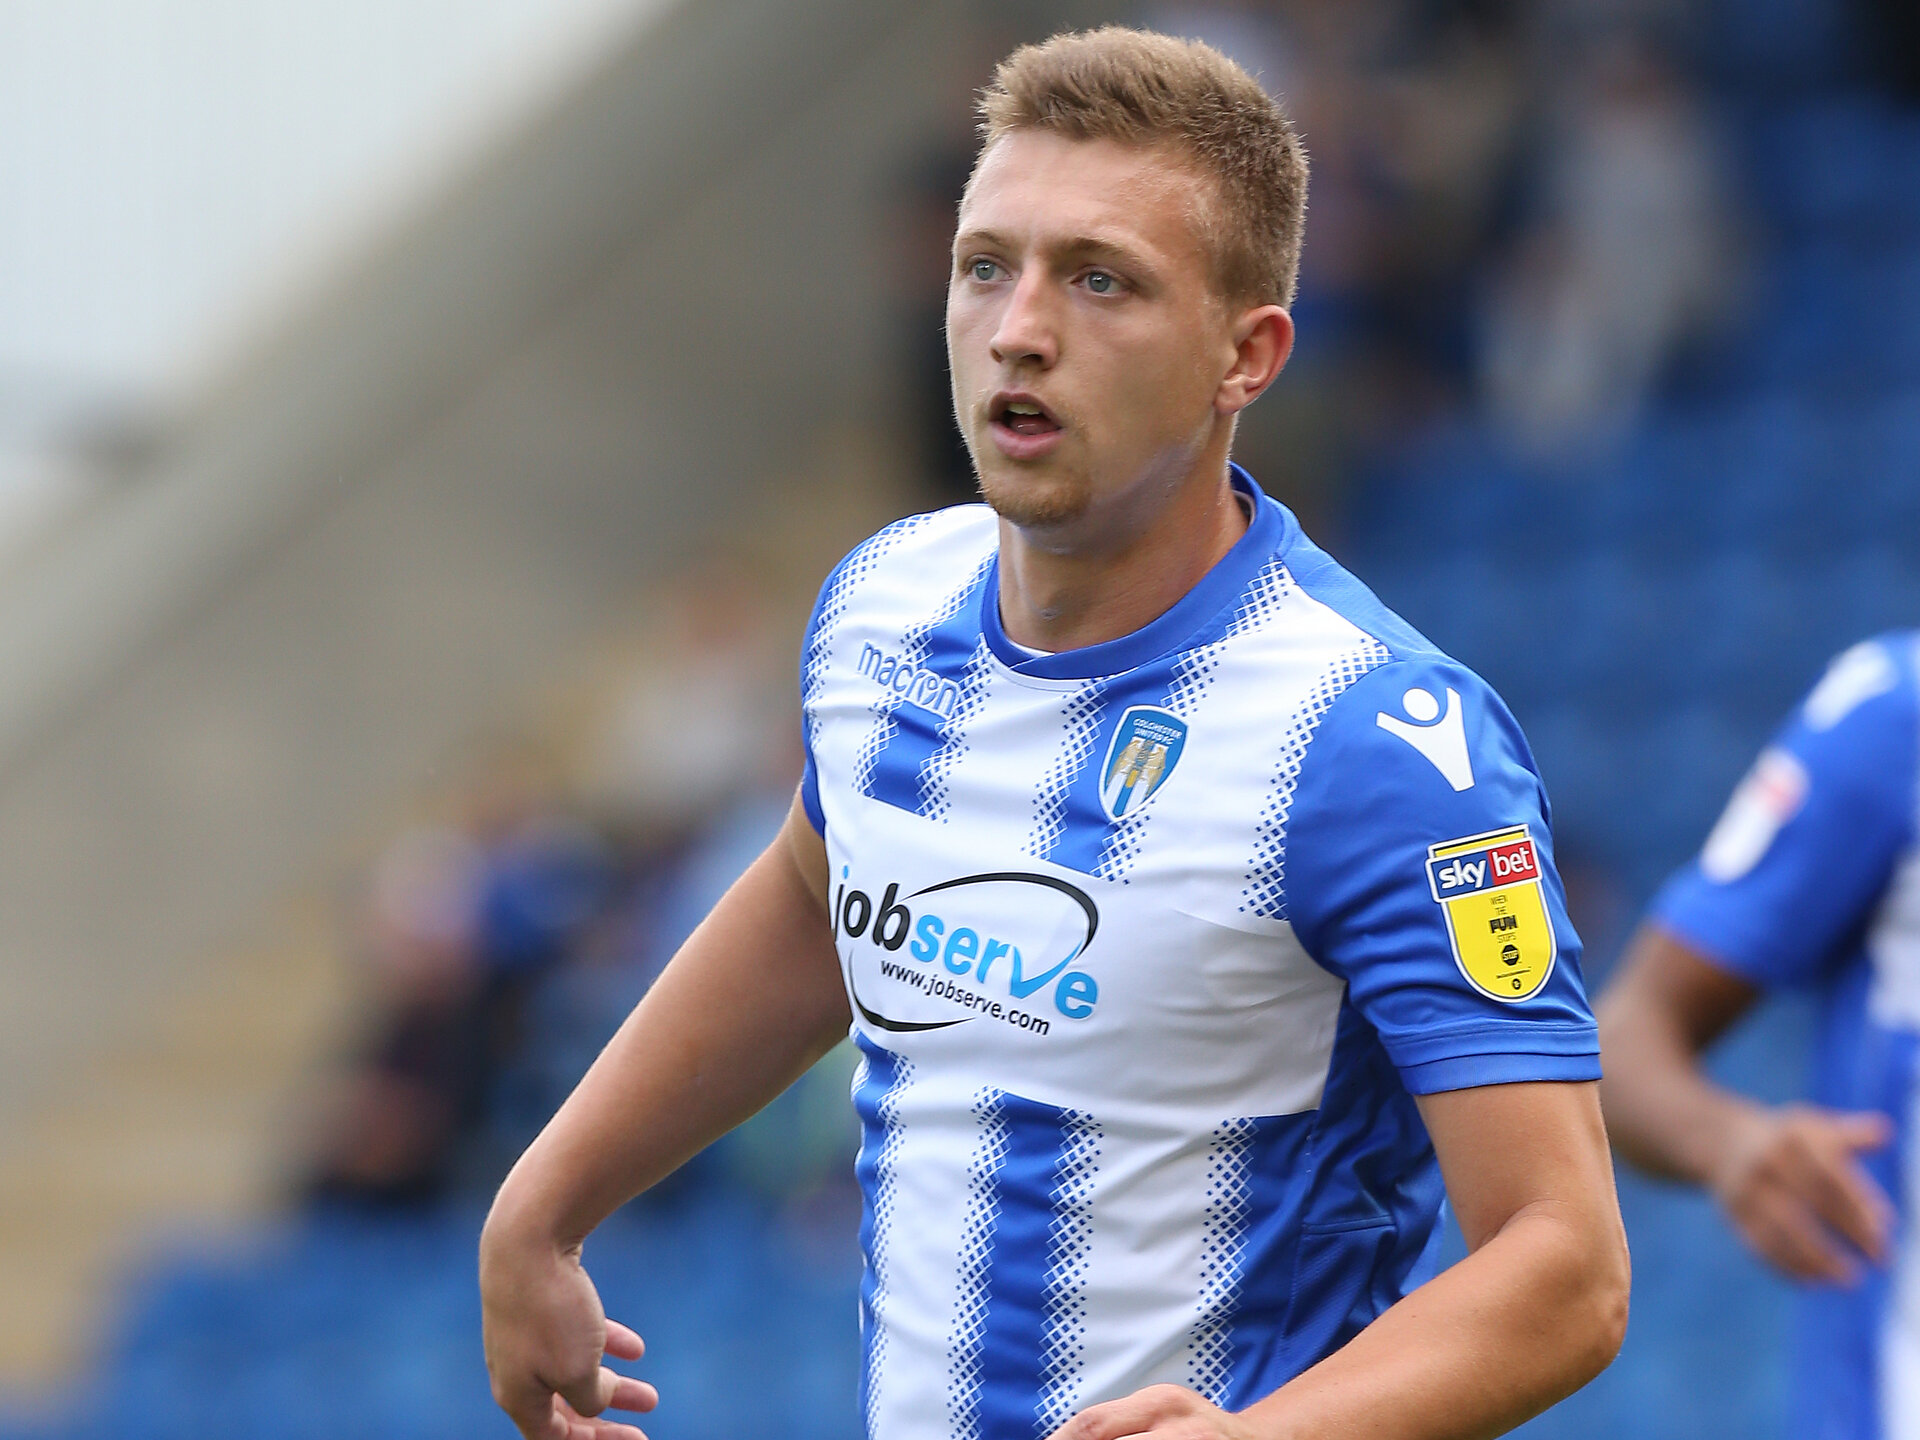 COLCHESTER, ENGLAND - AUGUST 25: Luke Norris of Colchester United in action during the Sky Bet League Two match between Colchester United and Northampton Town at Jobserve Community Stadium on August 25, 2018 in Colchester, United Kingdom. (Photo by Pete Norton/Getty Images)